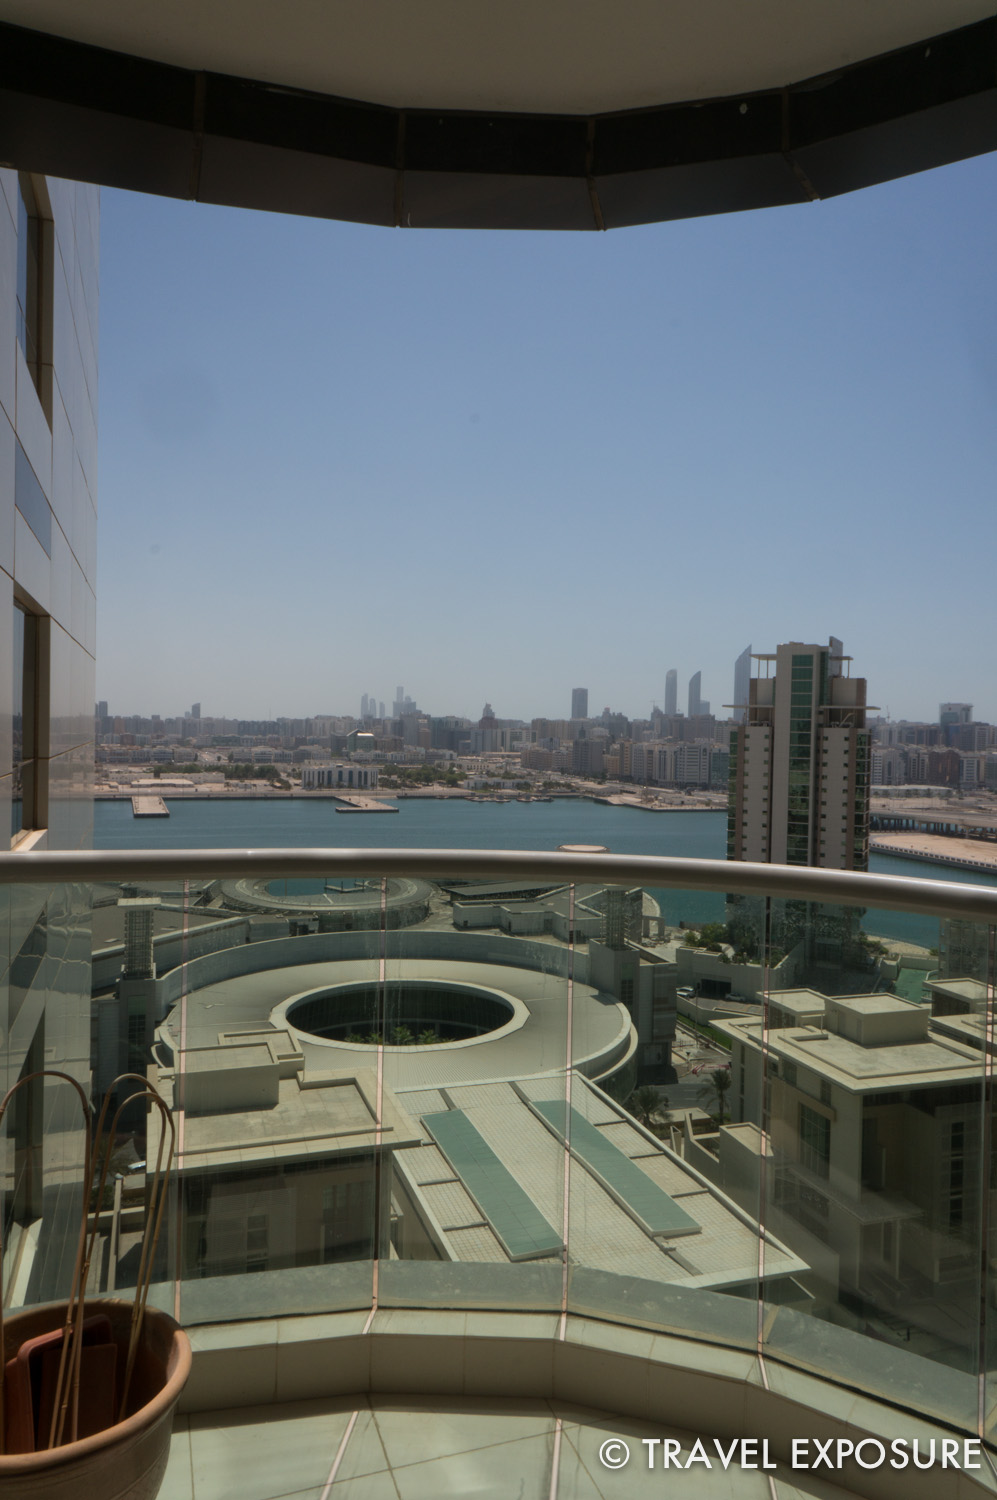 View from Kathy and Brian's apartment balcony in Abu Dhabi.